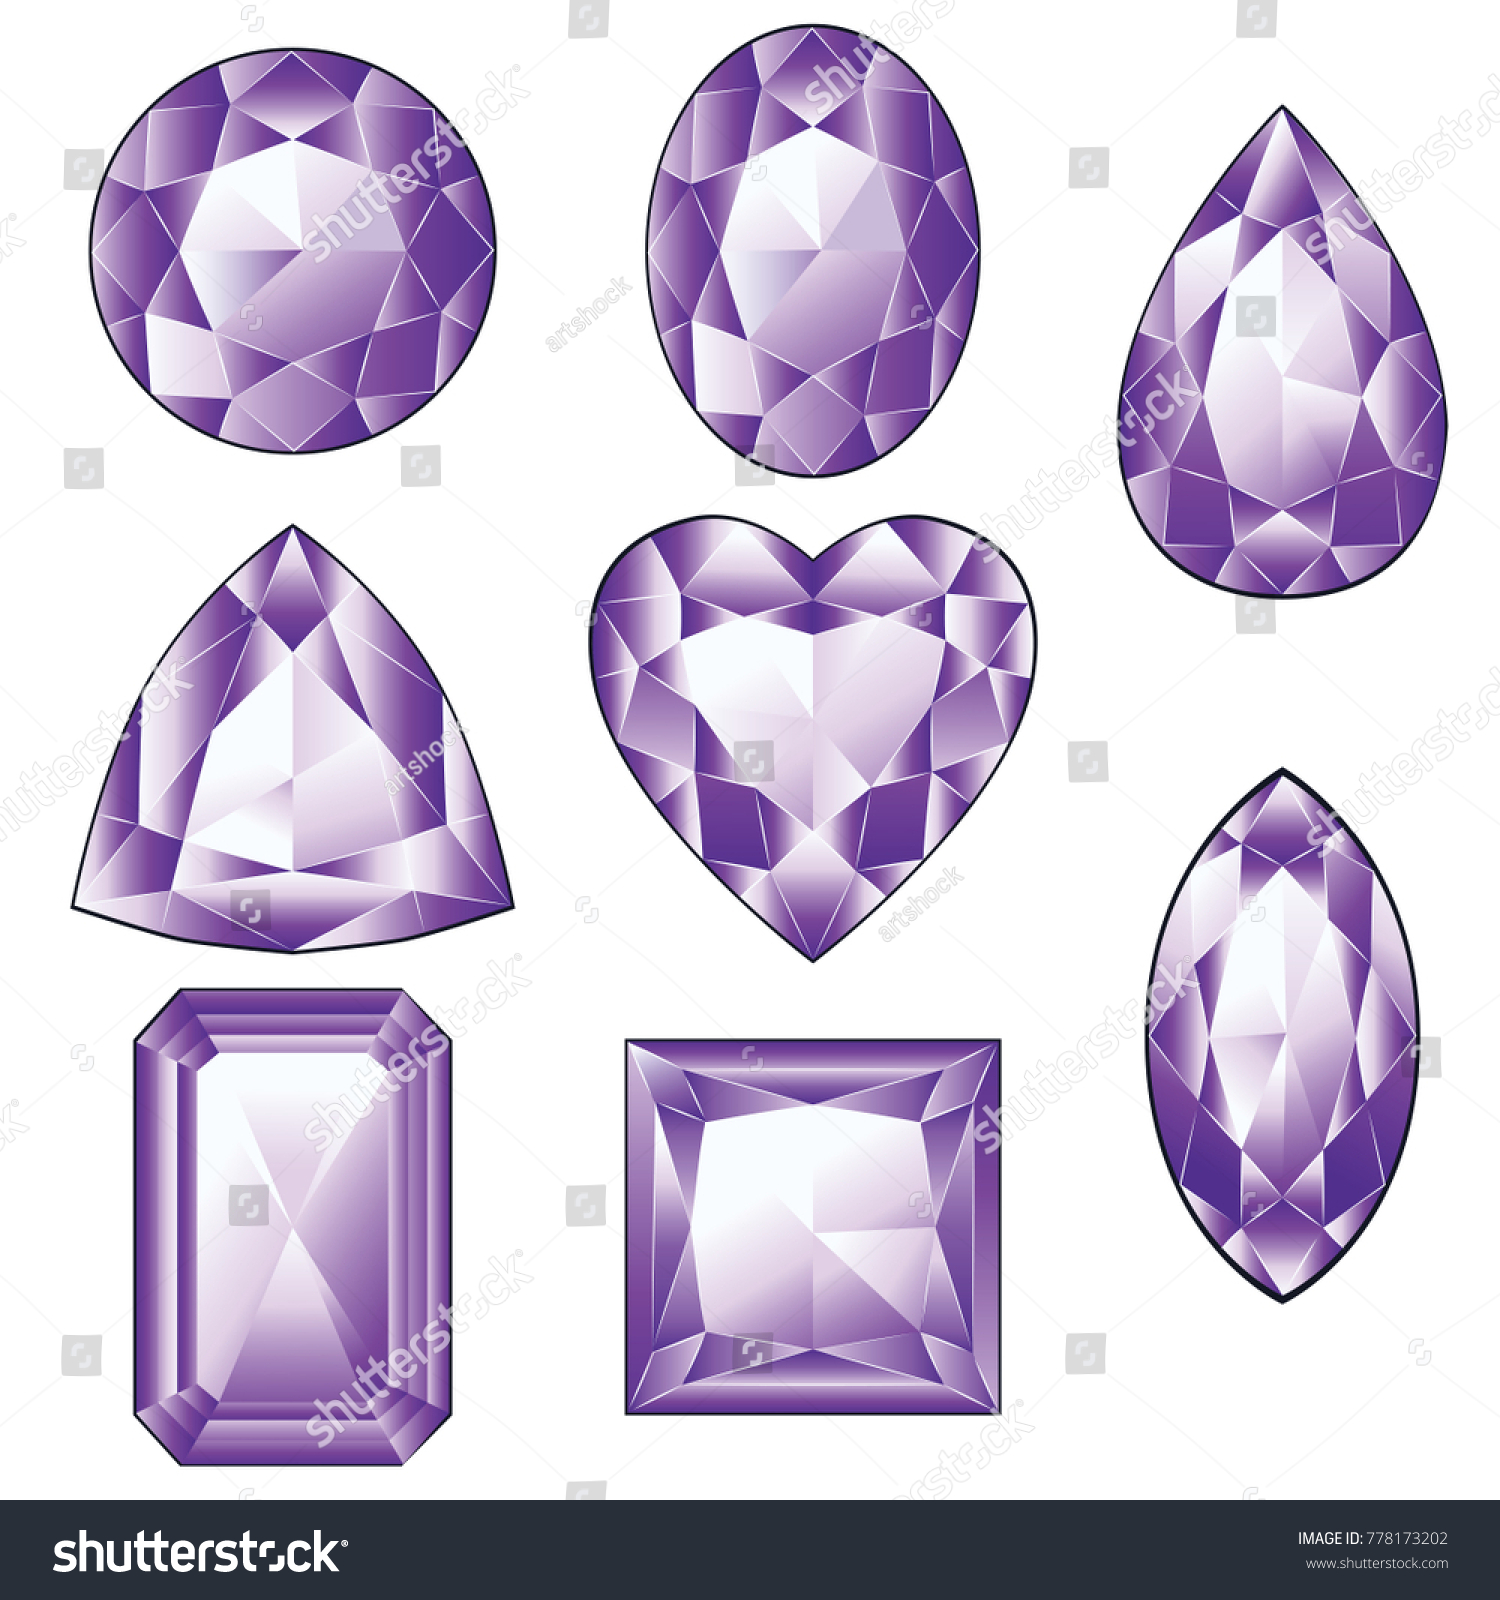 gem gemstones shutterstock stone stock amethyst set gemstone of photo violet illustration purple crystal watercolor collection image